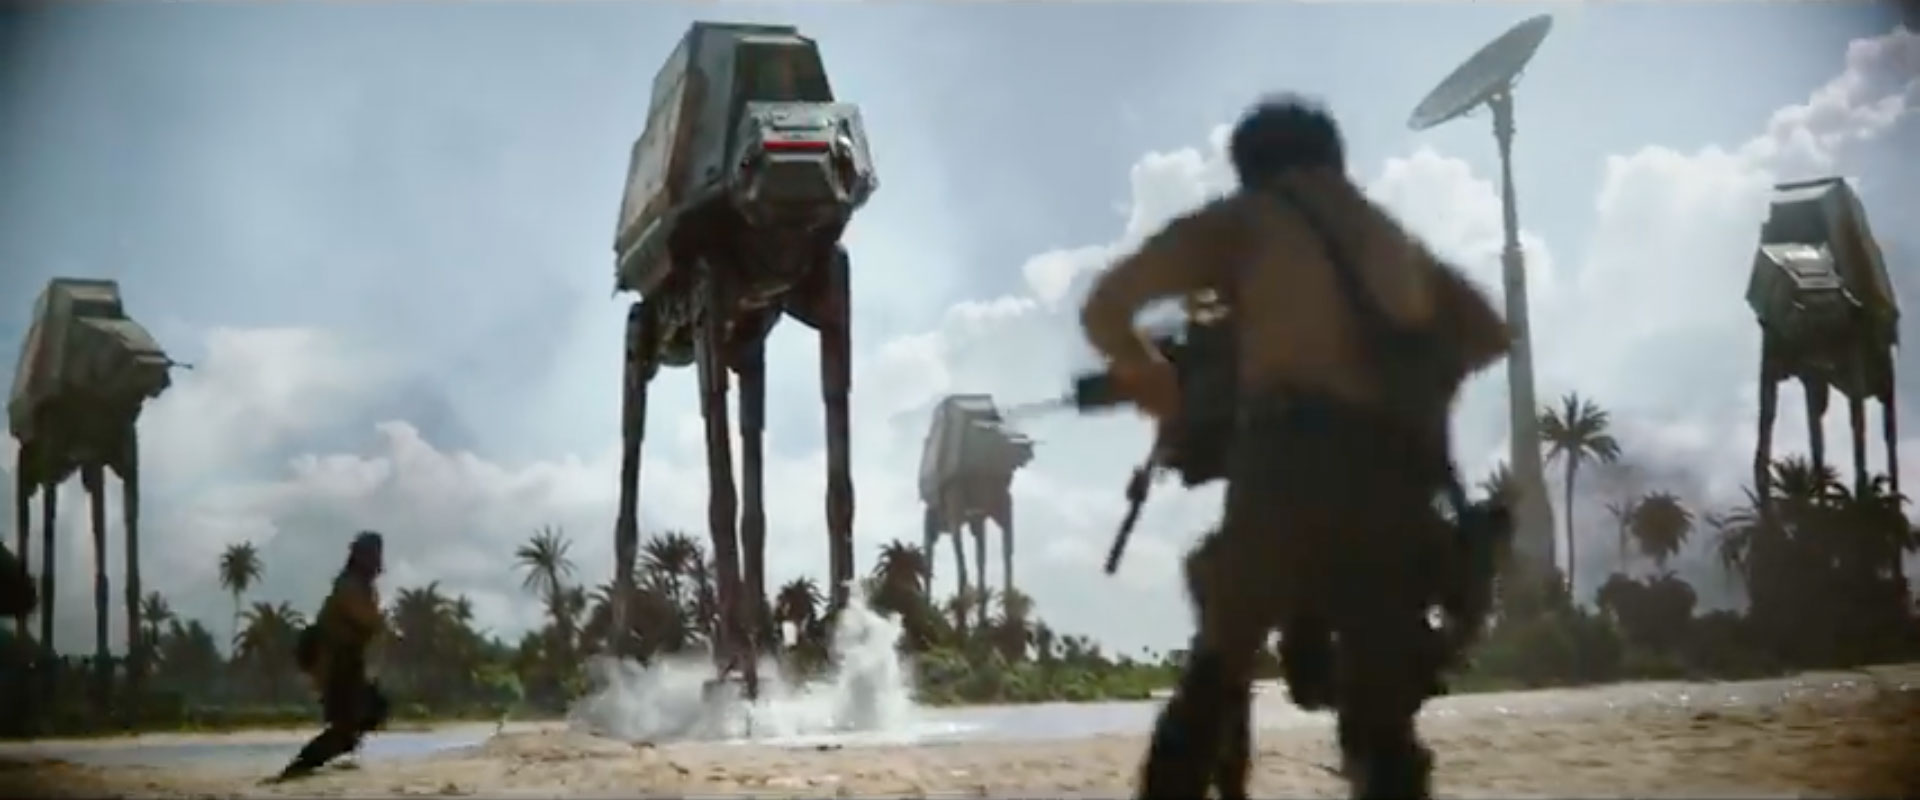 star-wars-gogue-one-movie-images-trailer-teaser